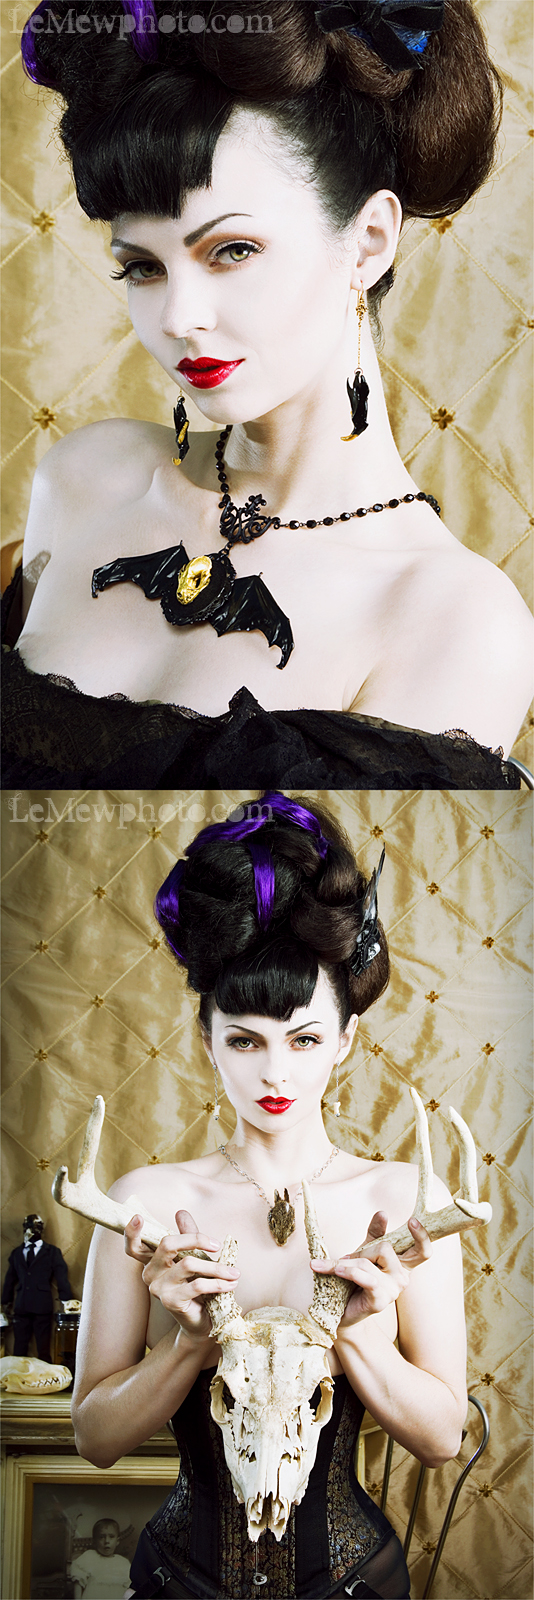 Jul 25, 2010 Taxidermy Accessories © Loved To Death ALL RIGHTS RESERVED